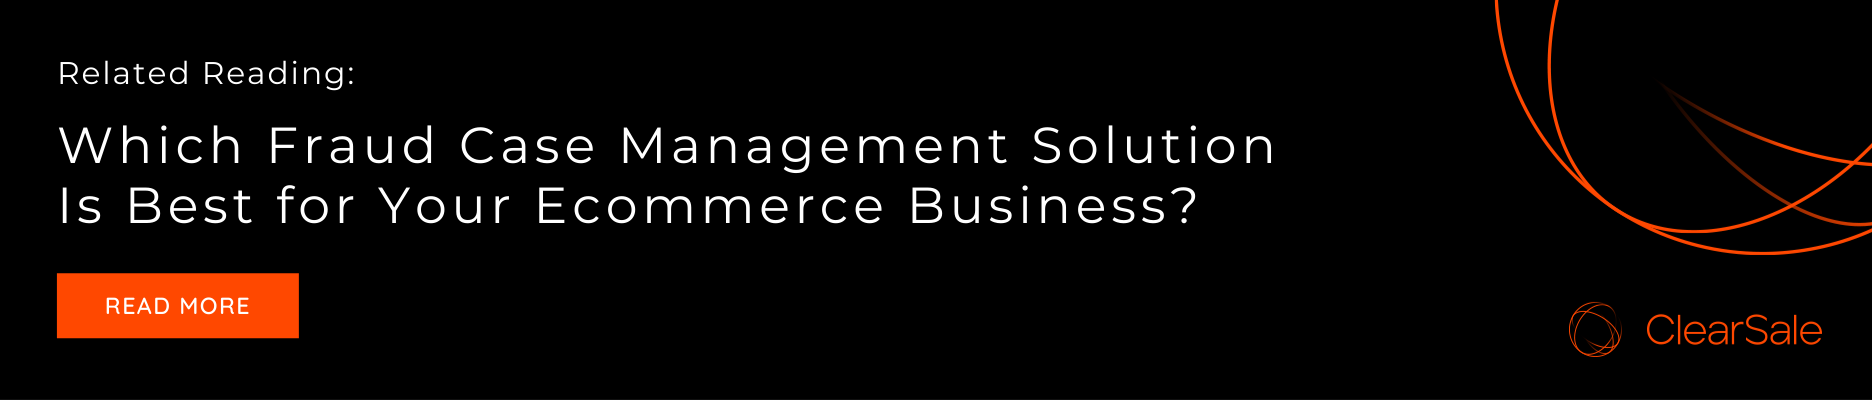 Related Reading: Which Fraud Case Management Solution Is Best for Your Ecommerce Business?